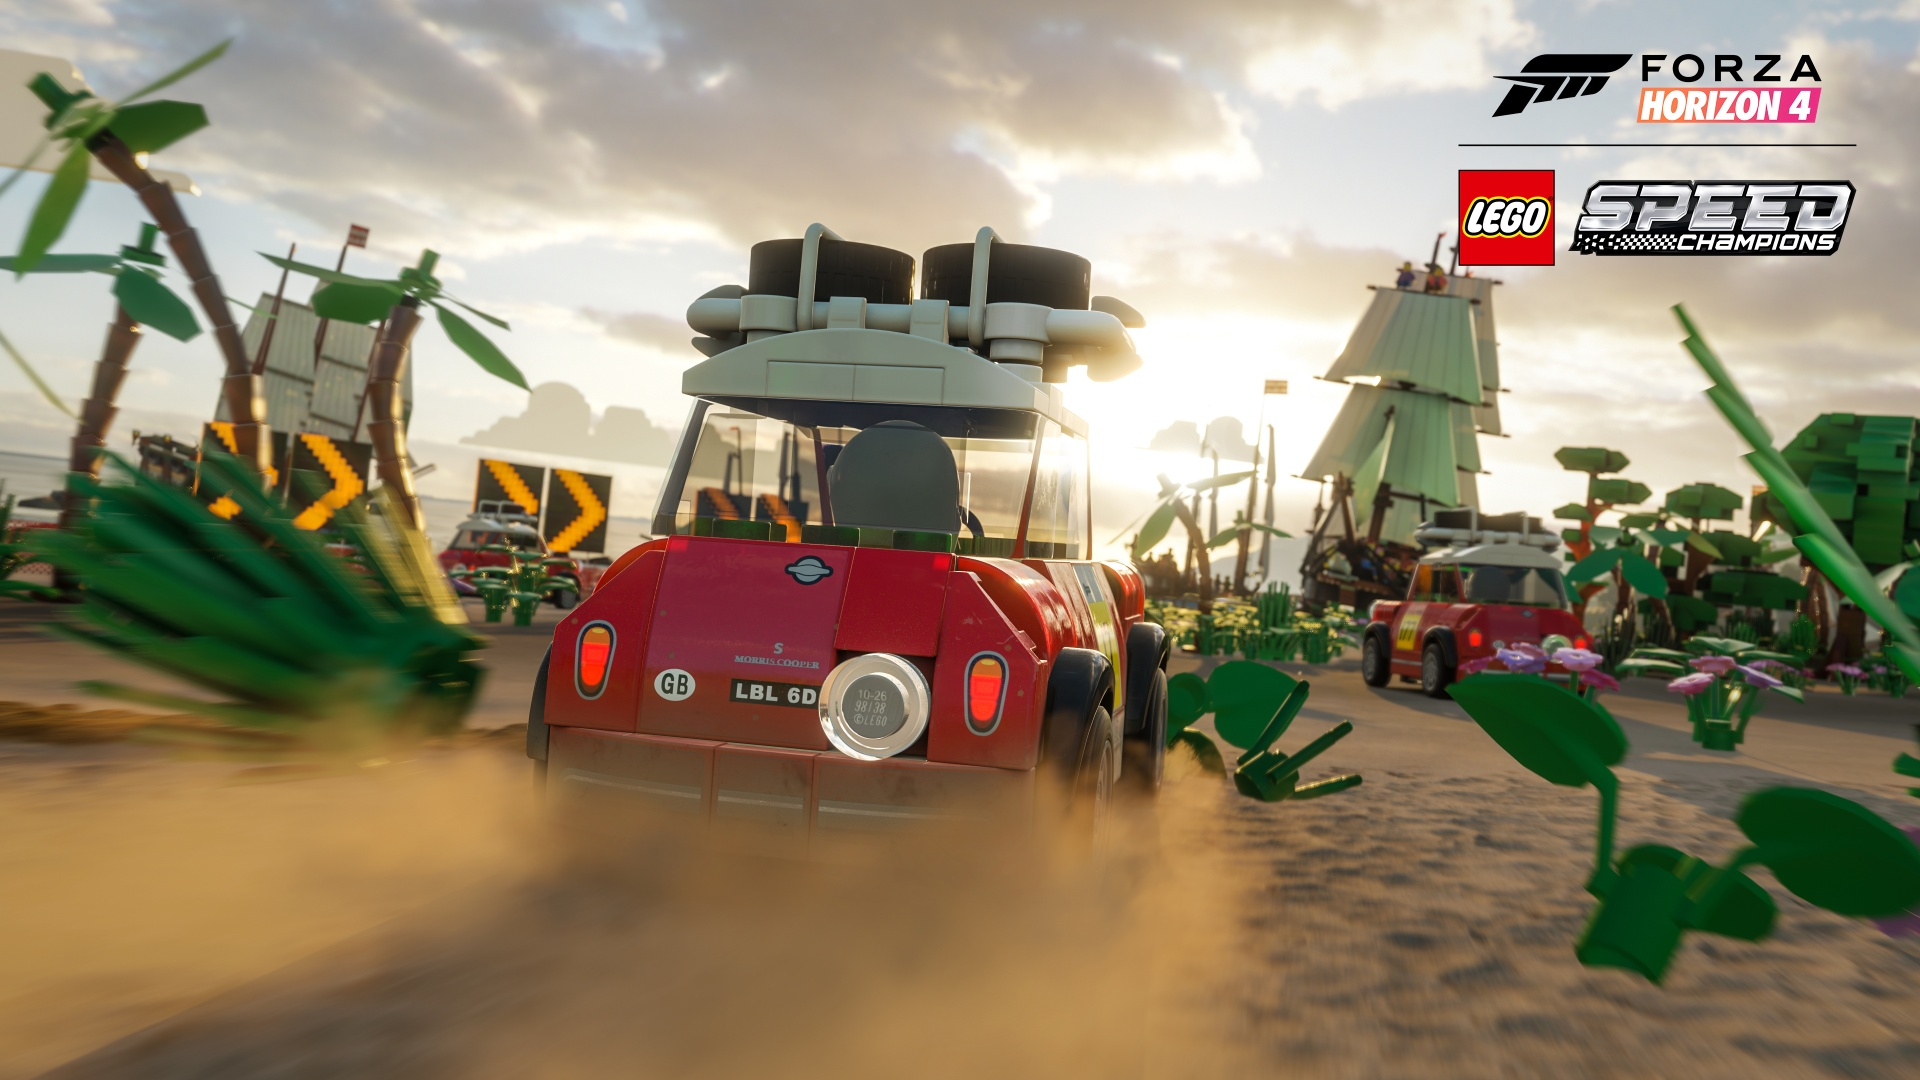 E3 2019: Everything is Awesome in Forza Horizon 4: LEGO